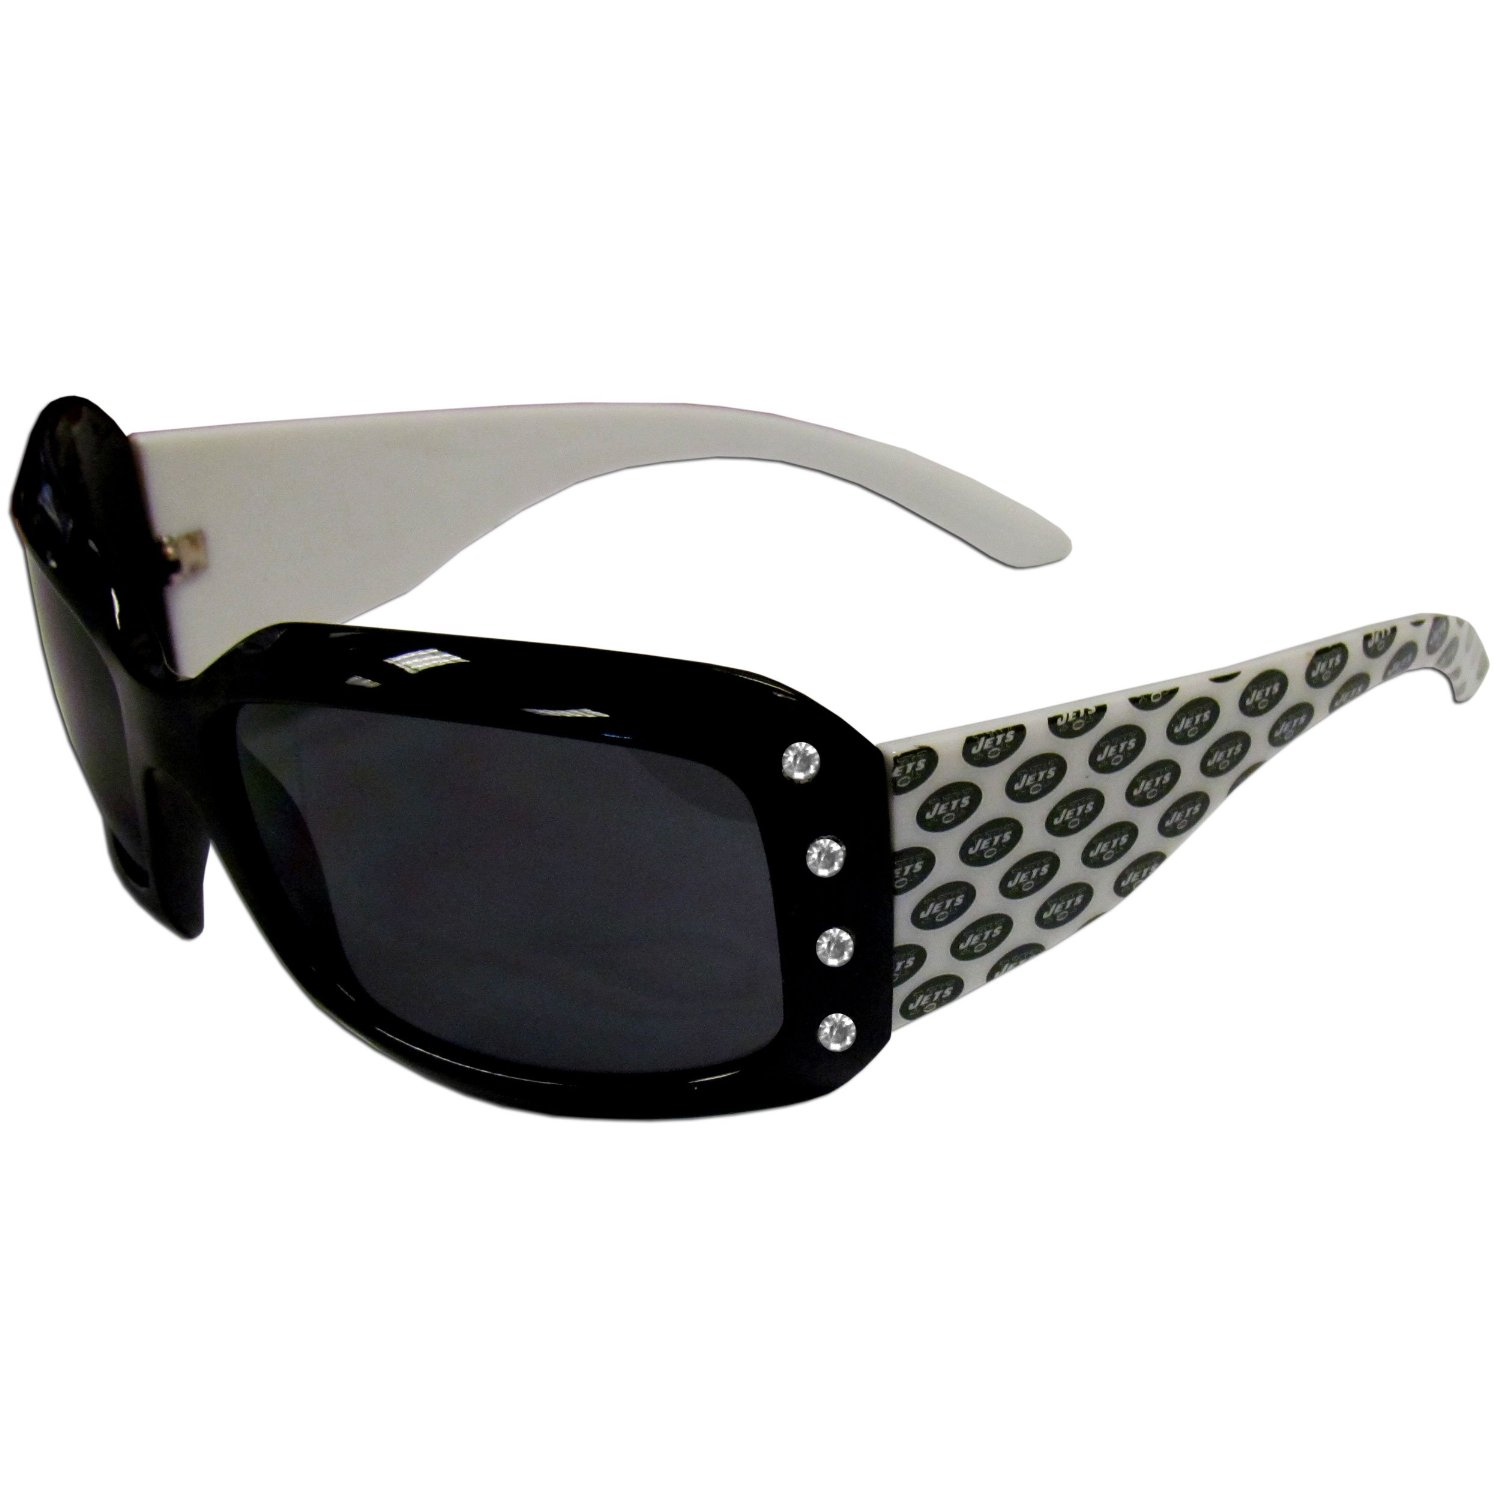 NFL Women's Designer Sunglasses